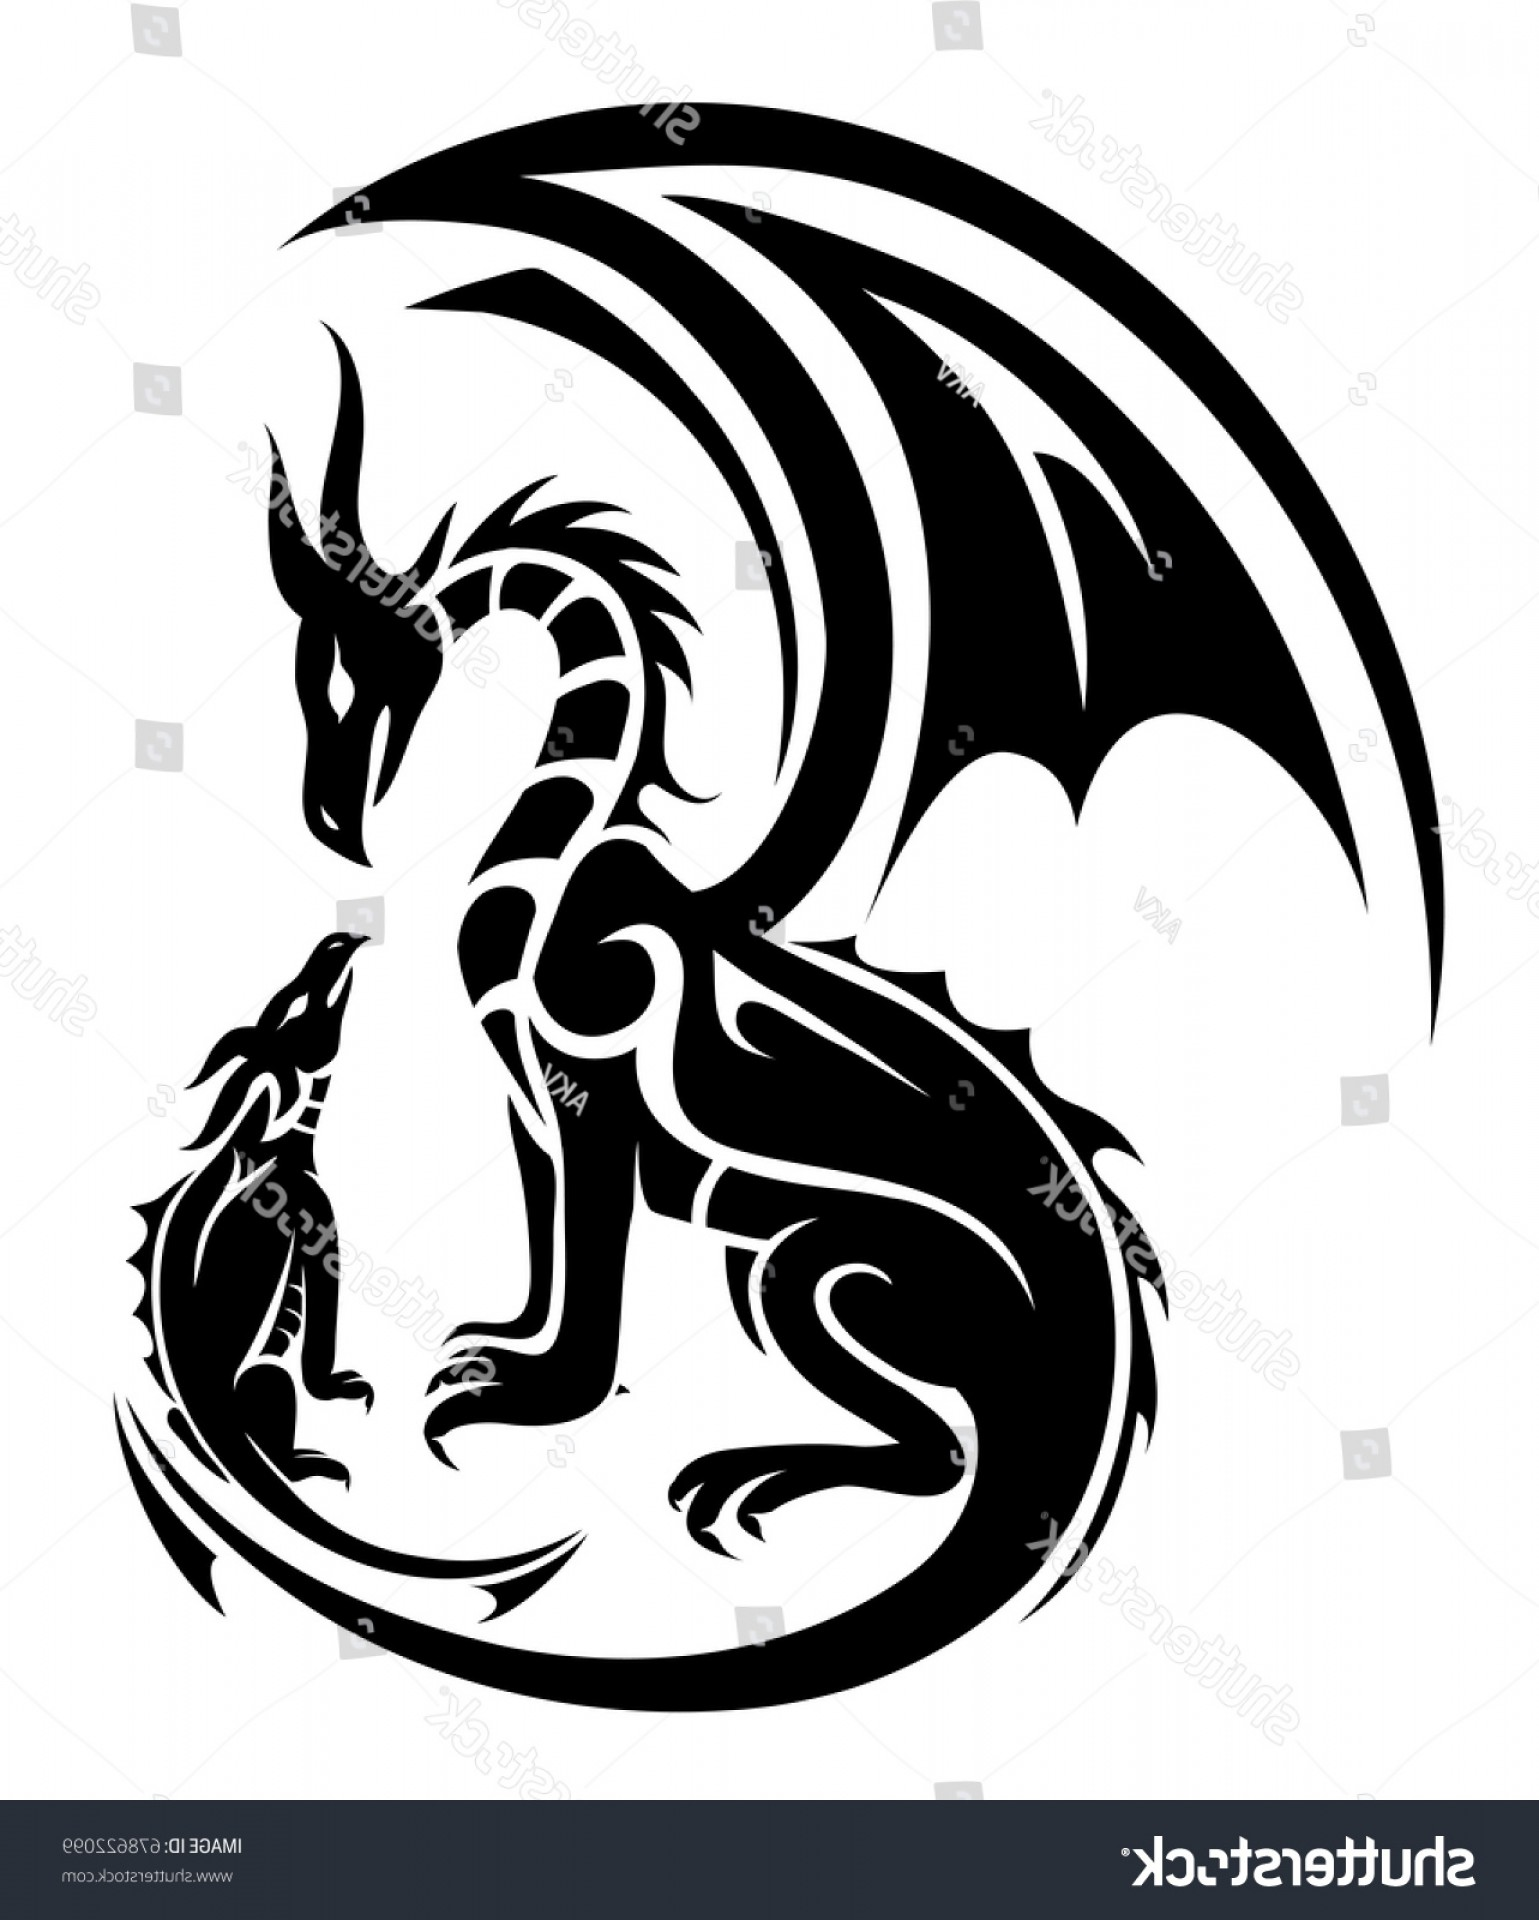 Baby Dragon Silhouette Vector: Two Dragons Tattoo Mother Child Concept